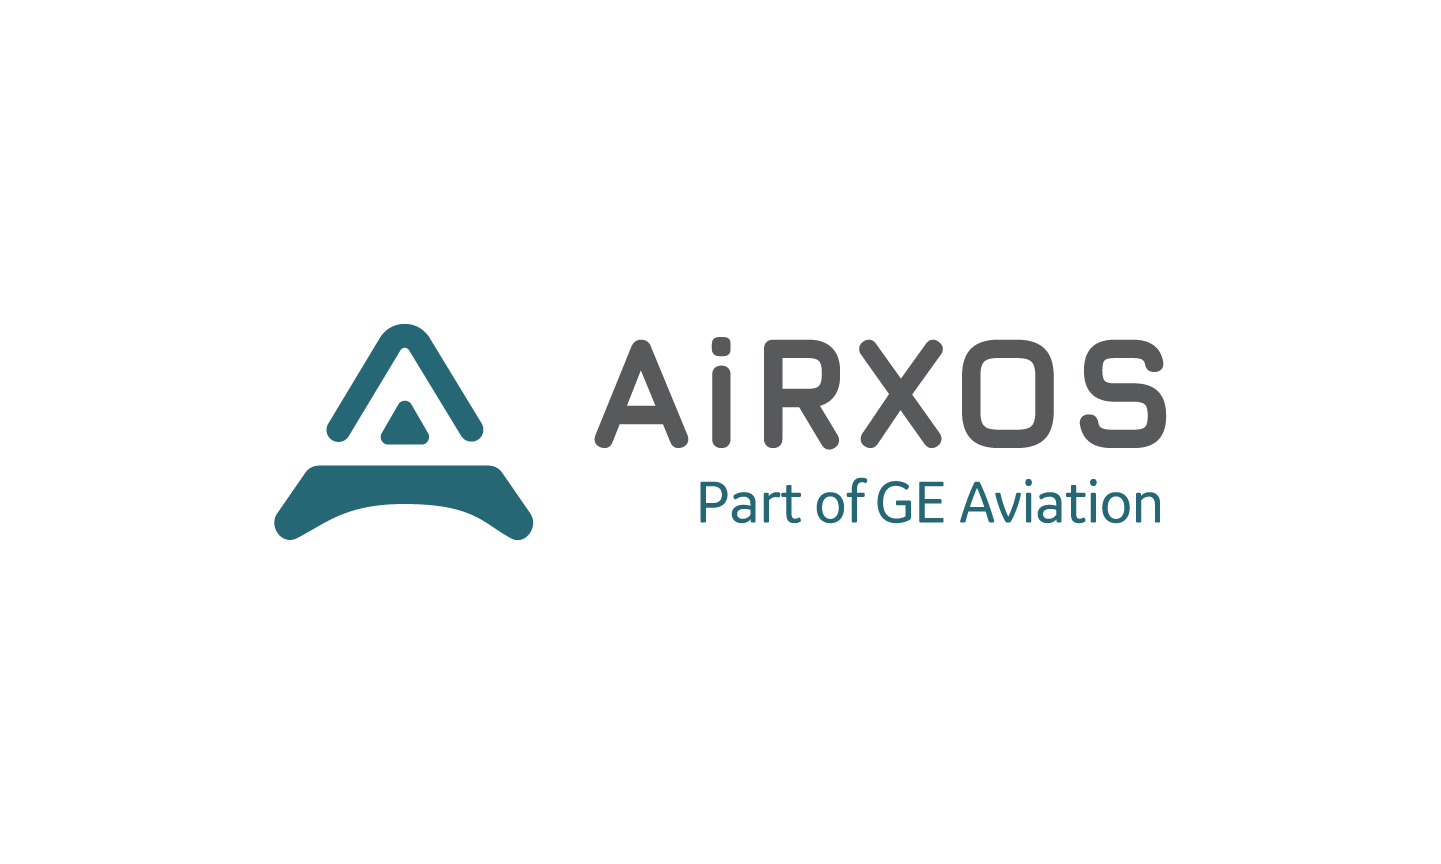 AiRXOS, Part of GE Aviation